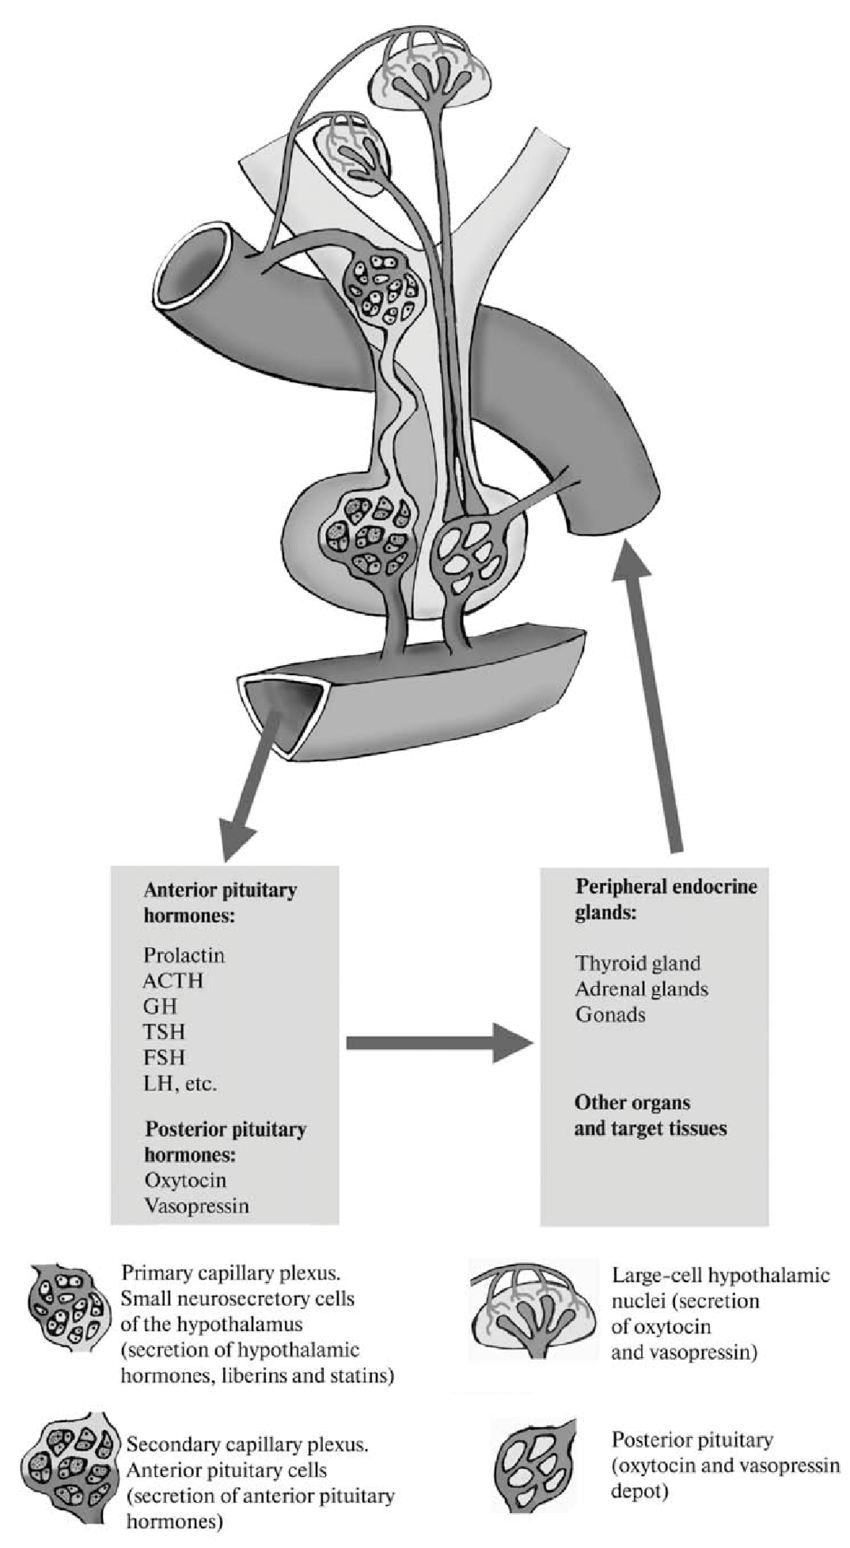 hight resolution of structure and function of the hypothalamus pituitary gland peripheral endocrine glands system scheme